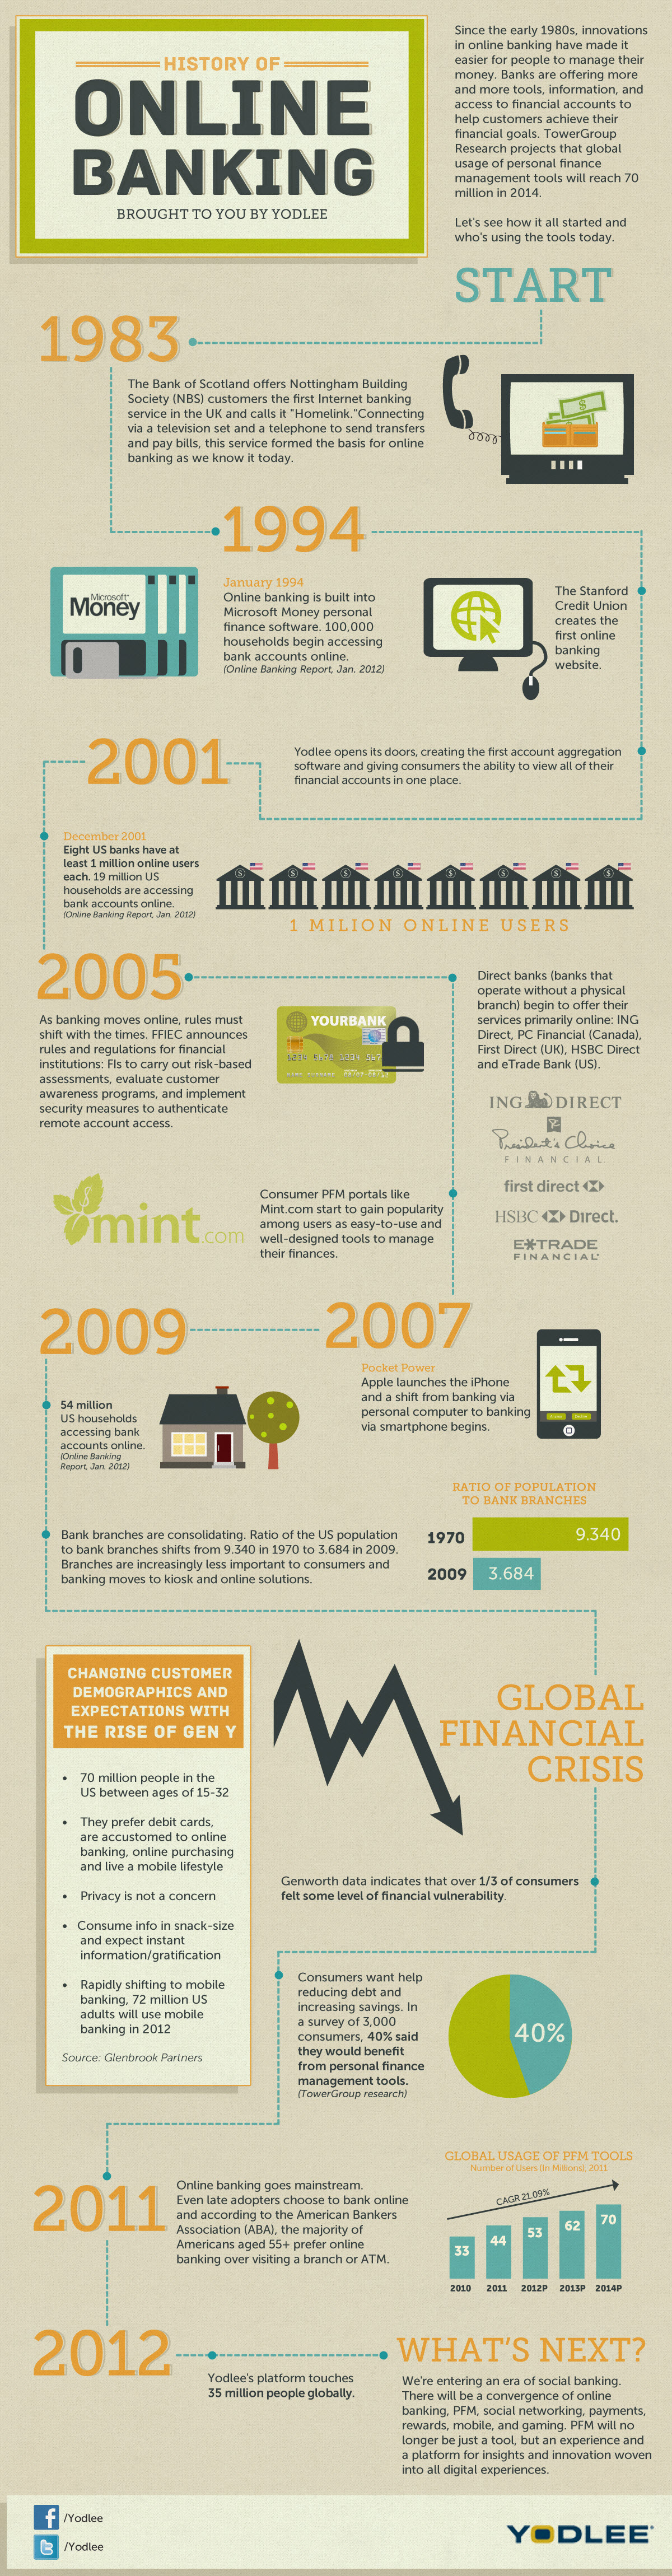 An introduction to the history of online banking services